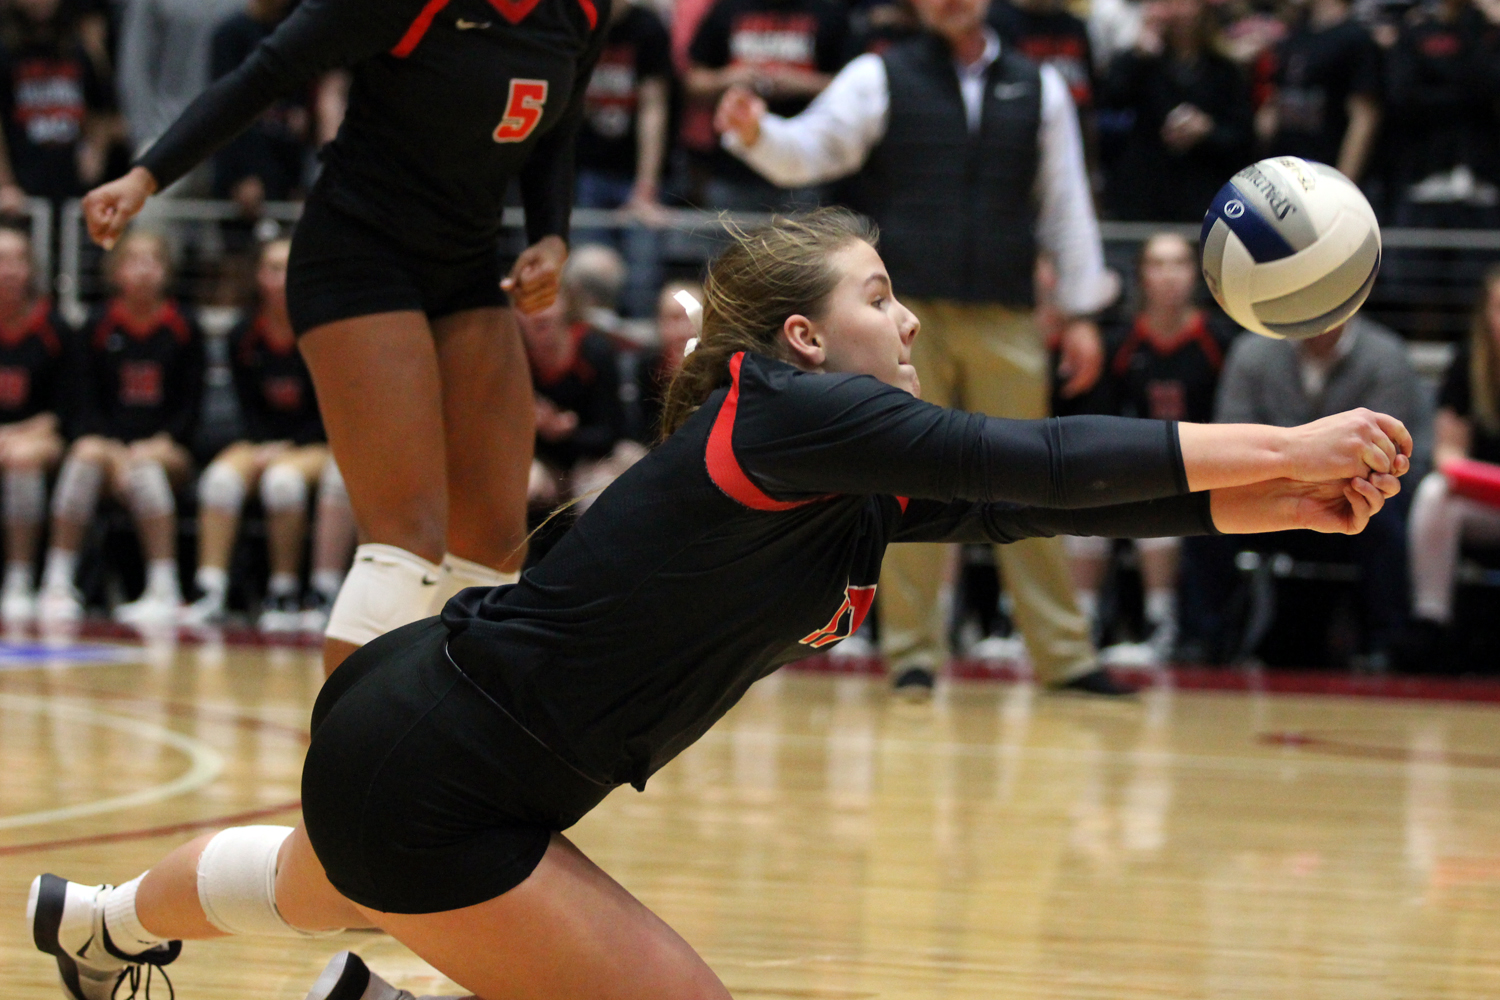 Sophomore+Grace+McLaughlin+dives+to+defend+a+hit+from+Kingwood+Park%27s+outside+hitter.